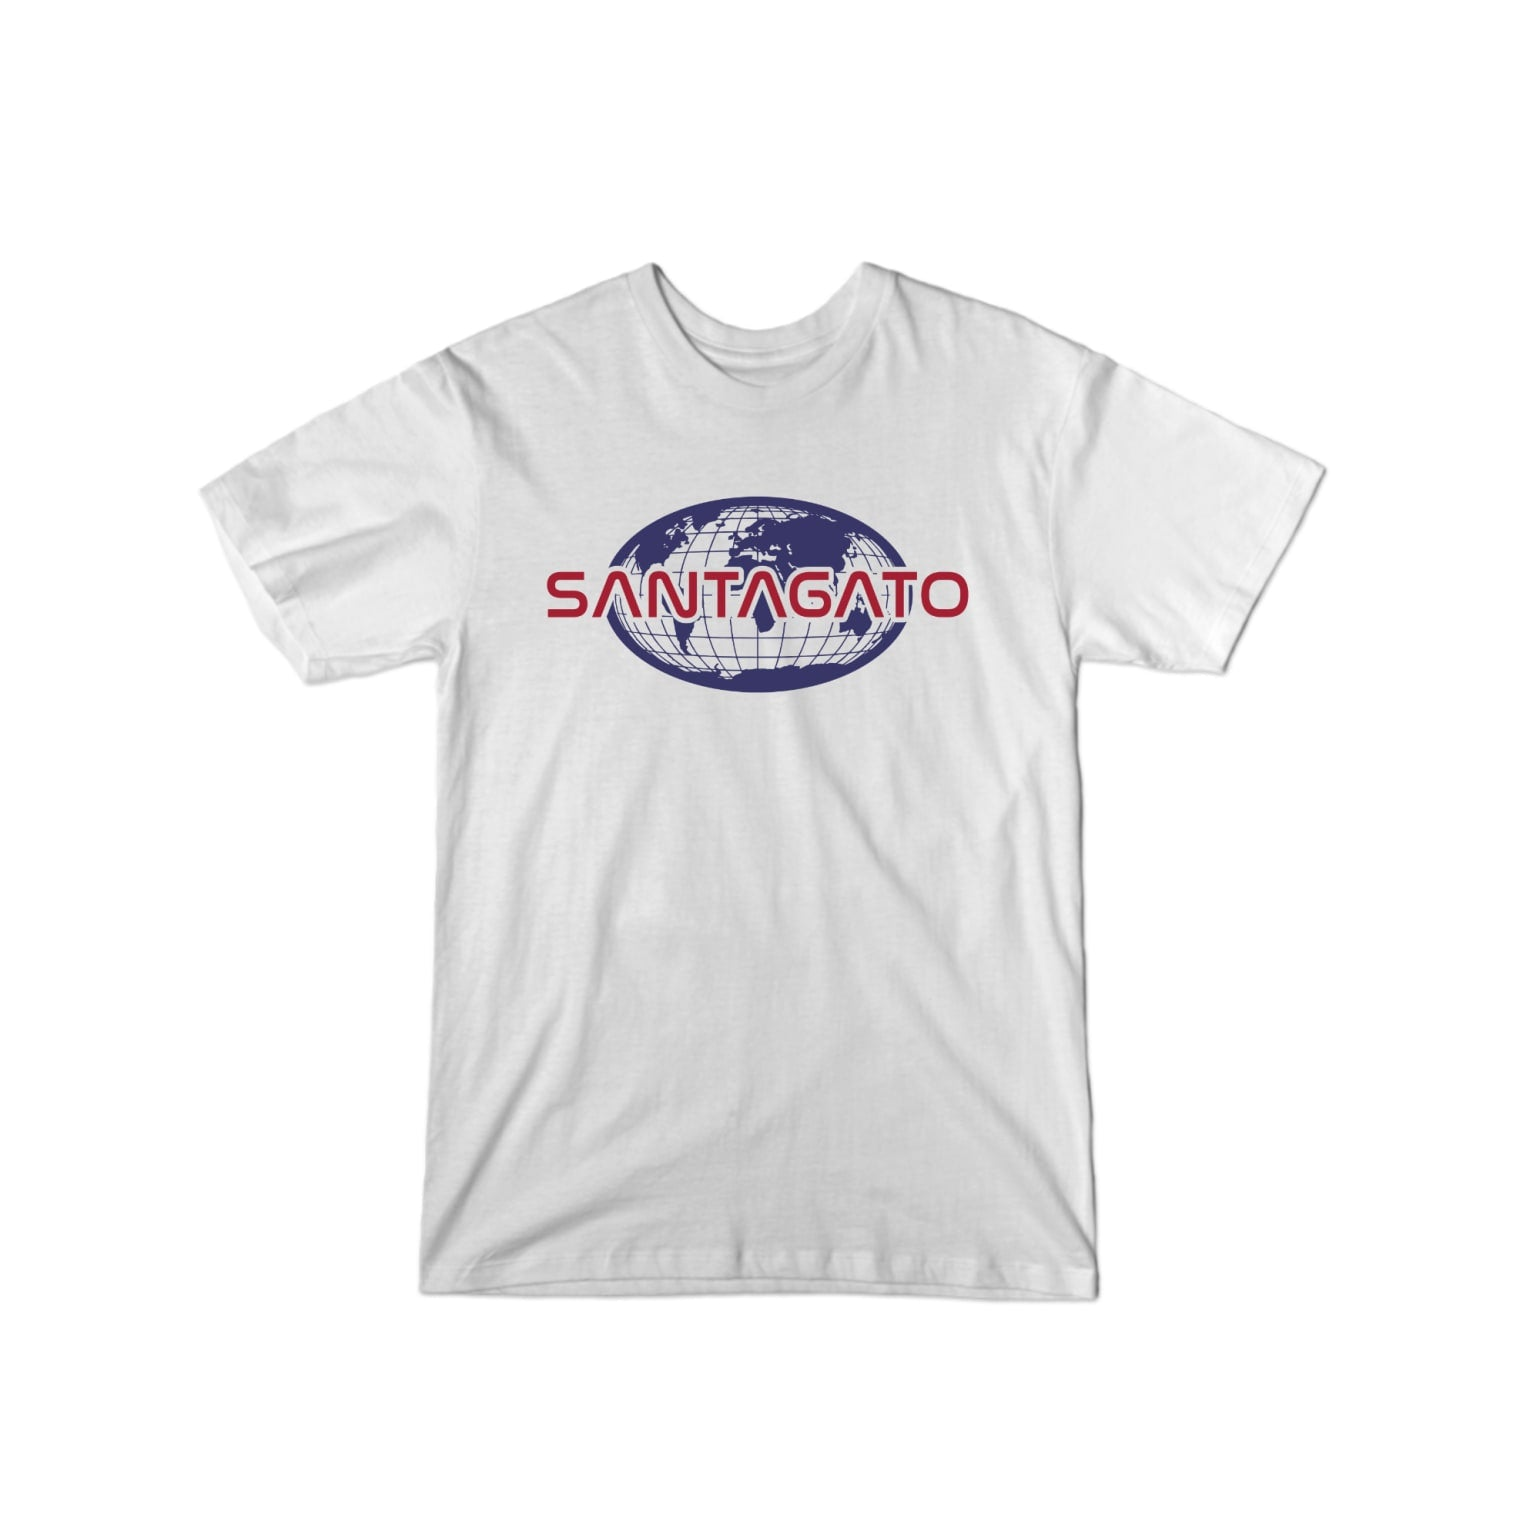 Santagato Worldwide T-Shirt